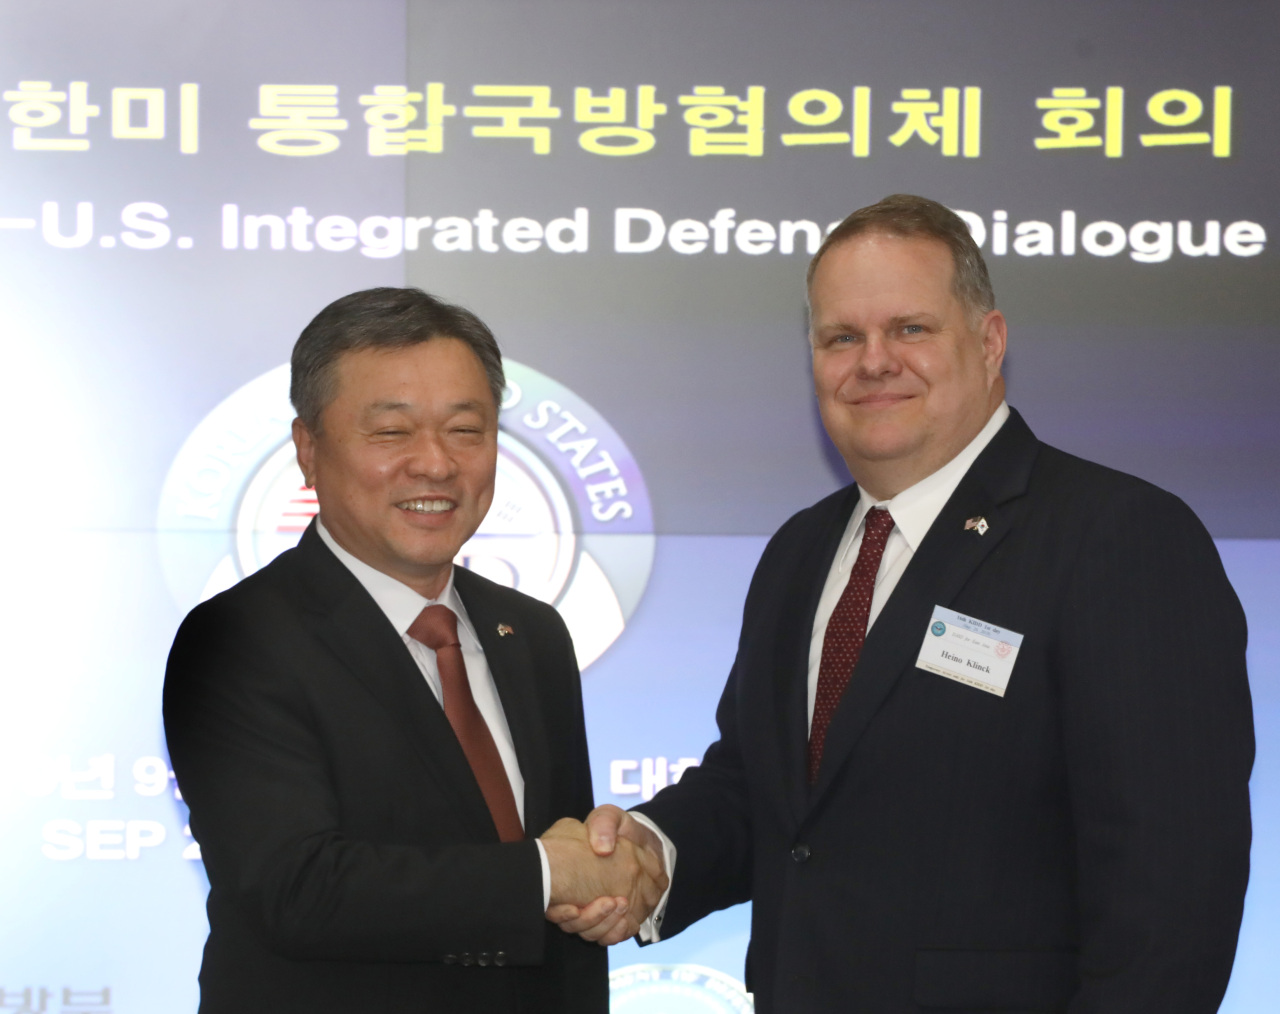 Deputy Defense Minister Chung Suk-hwan (left) and Deputy Assistant Secretary of Defense for East Asia Heino Klinck. (Yonhap)